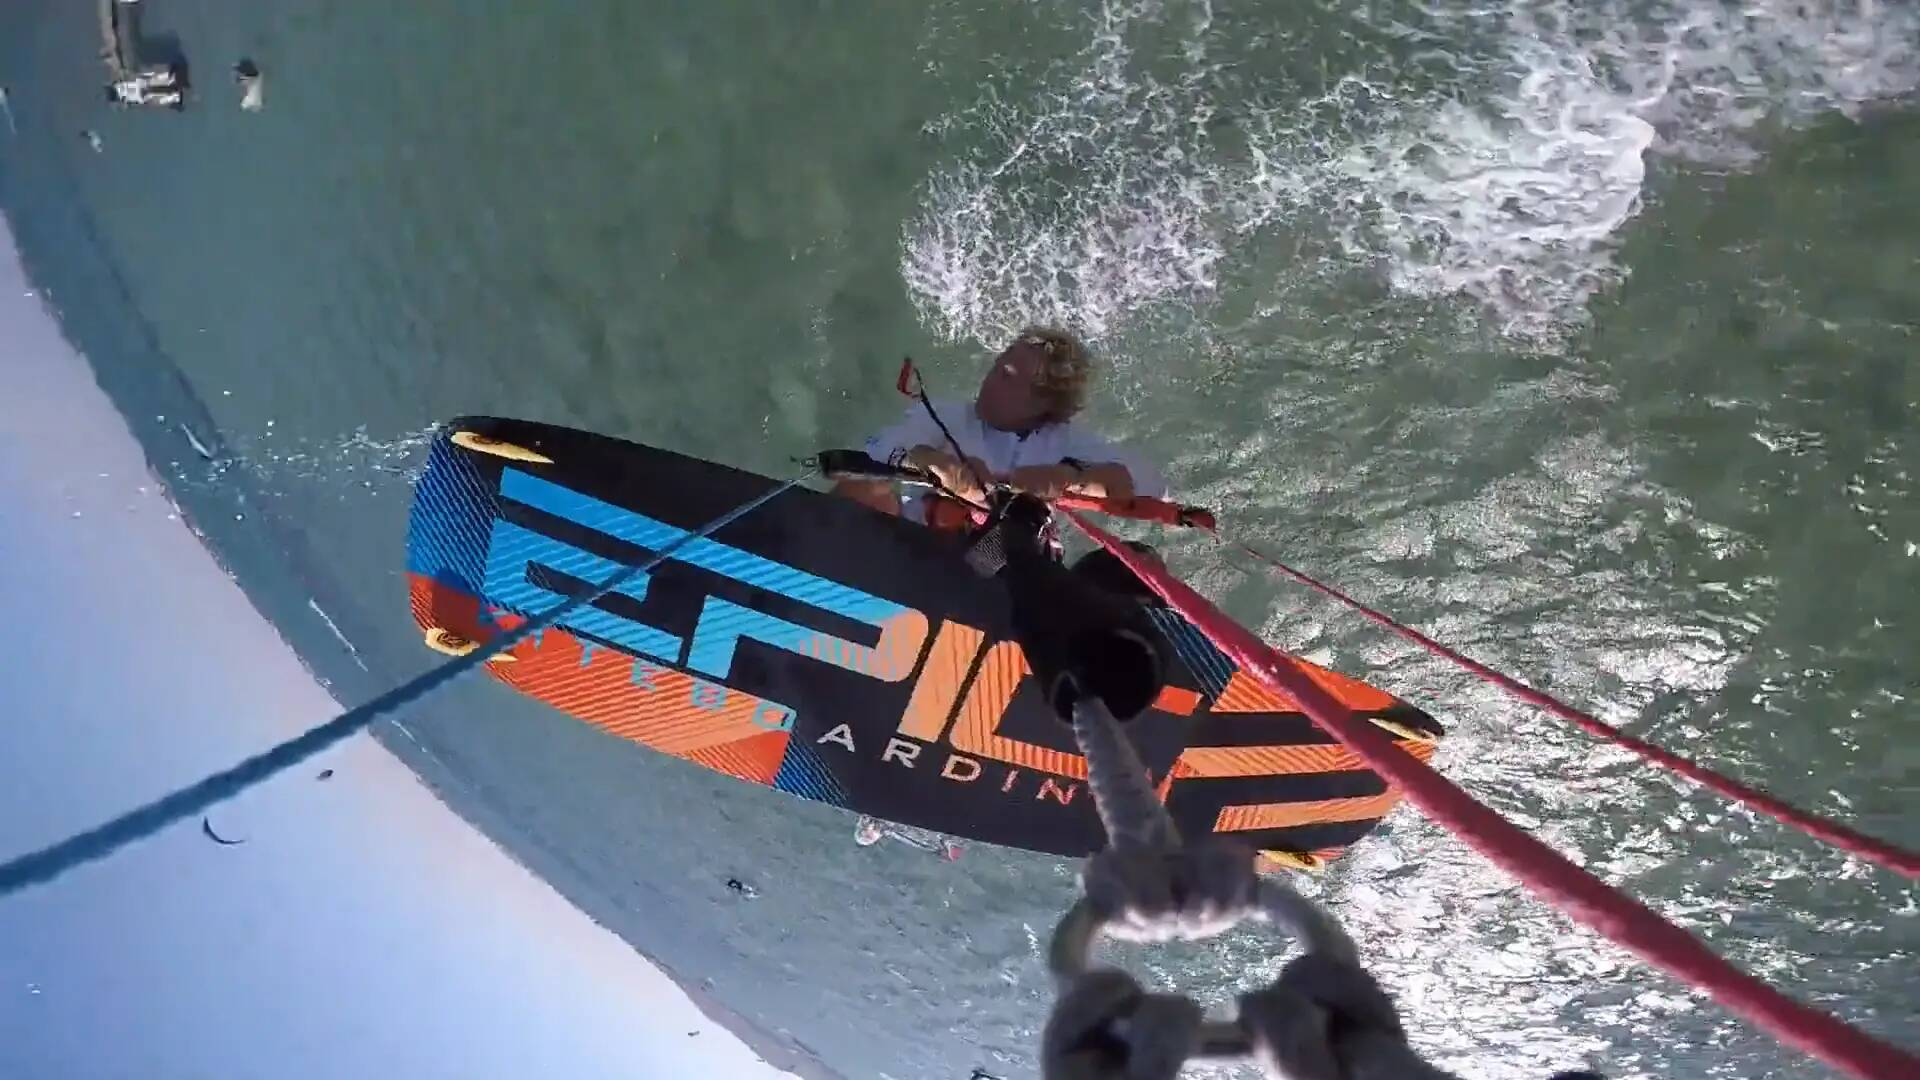 Father and son Epic adventure 4 - with Epic Kites Kiteboarding